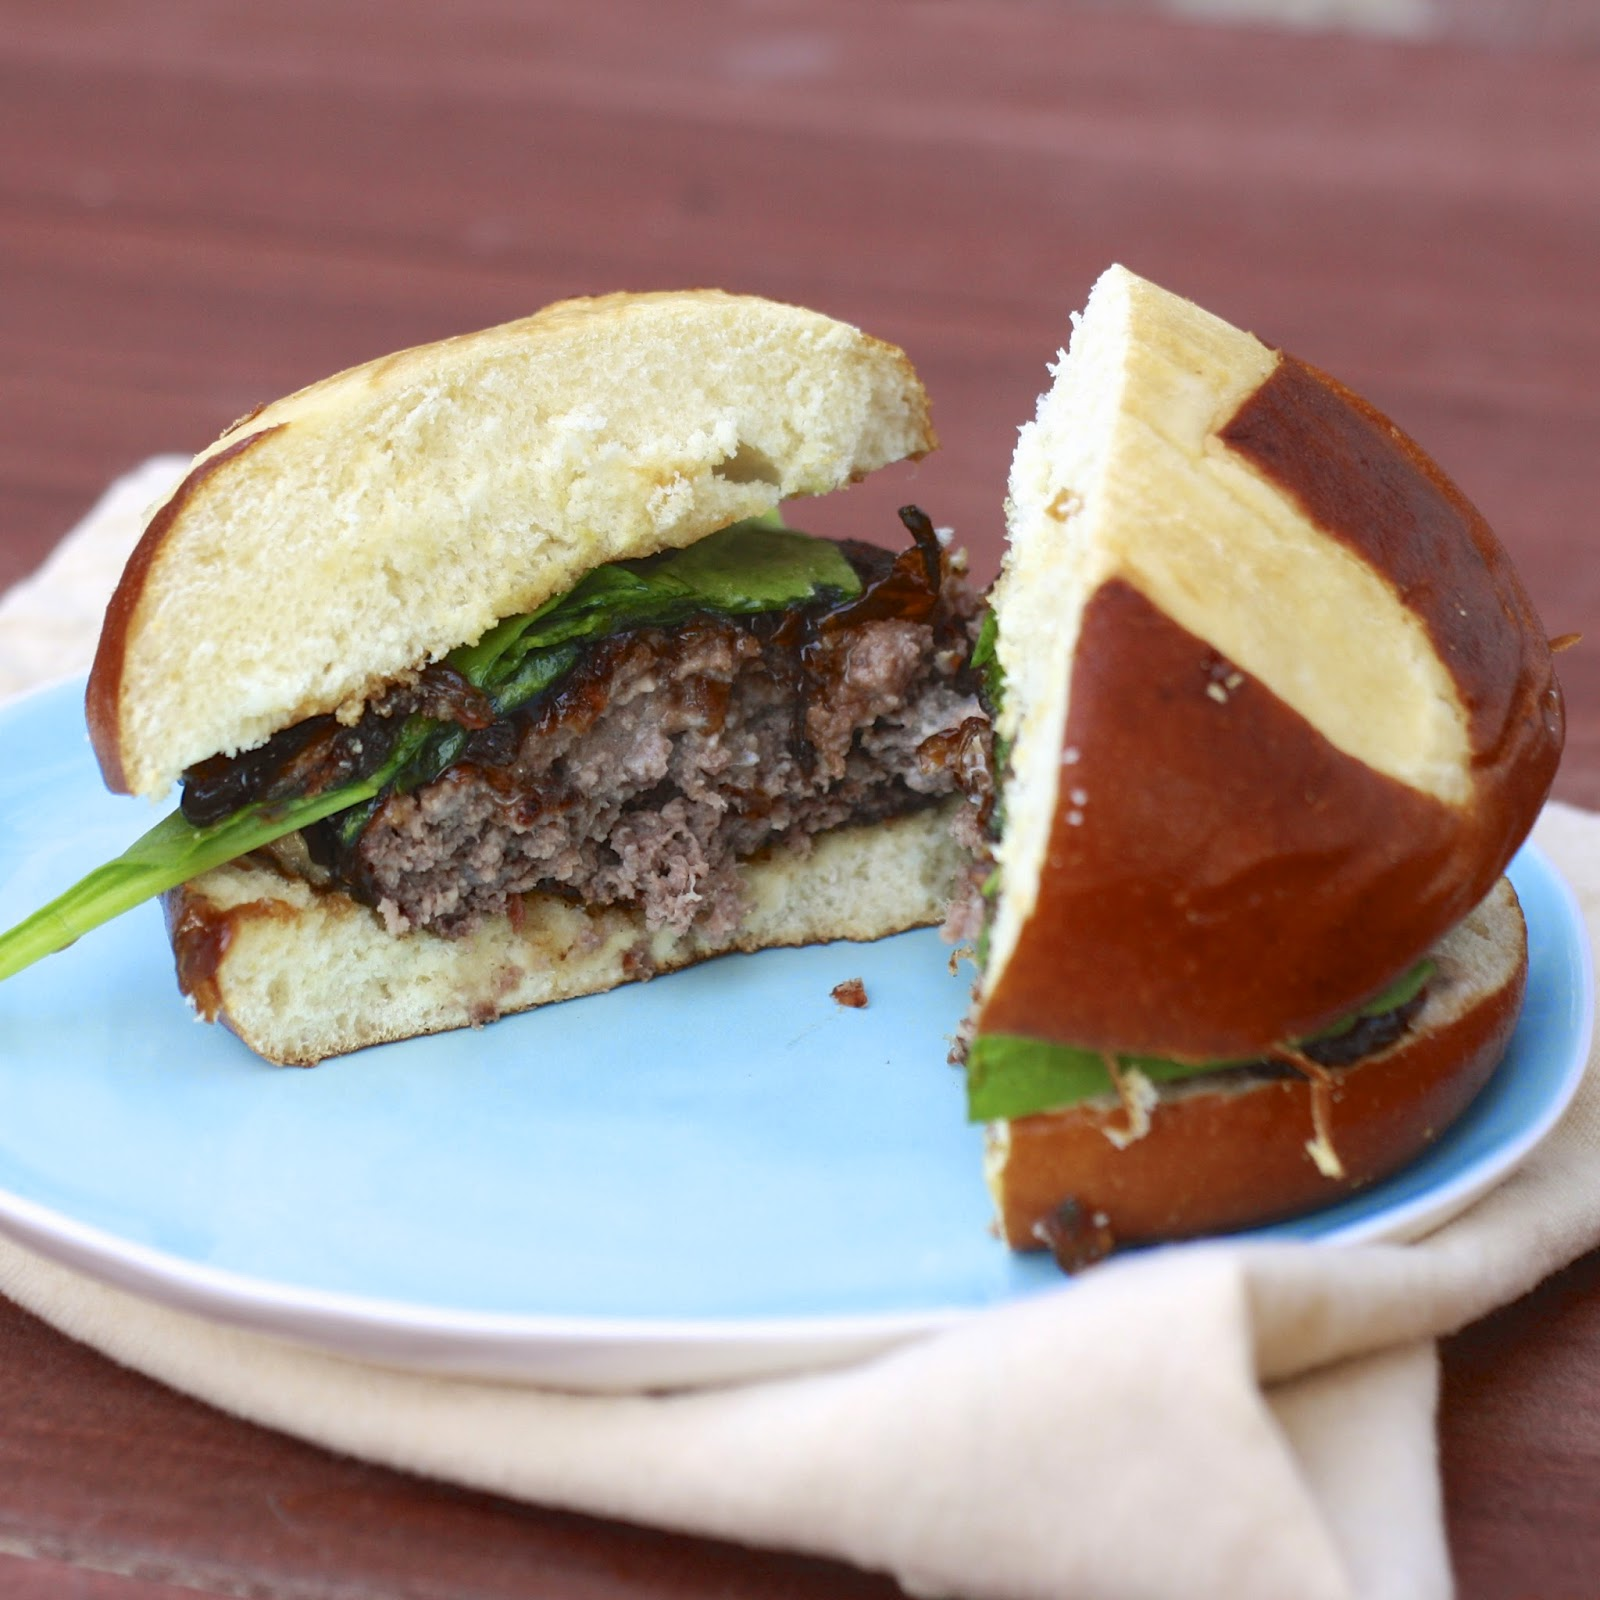 Blue Cheese Stuffed Burgers with Caramelized Onion Jam | The Sweets Life